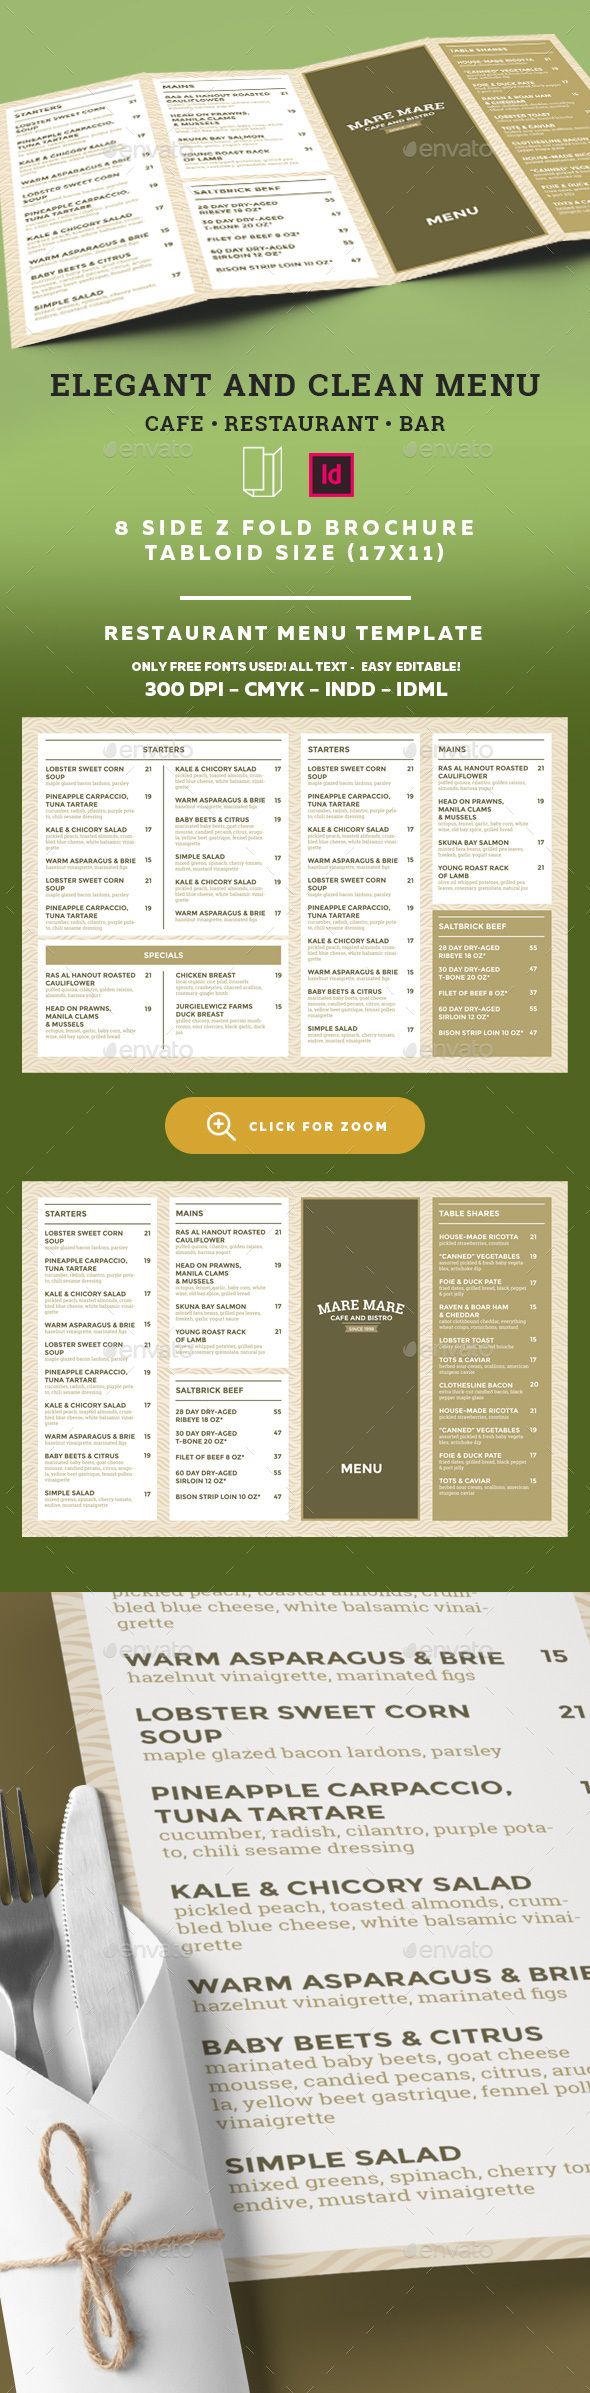 Cool Indesign Menu Template Images - Entry Level Resume Templates ...